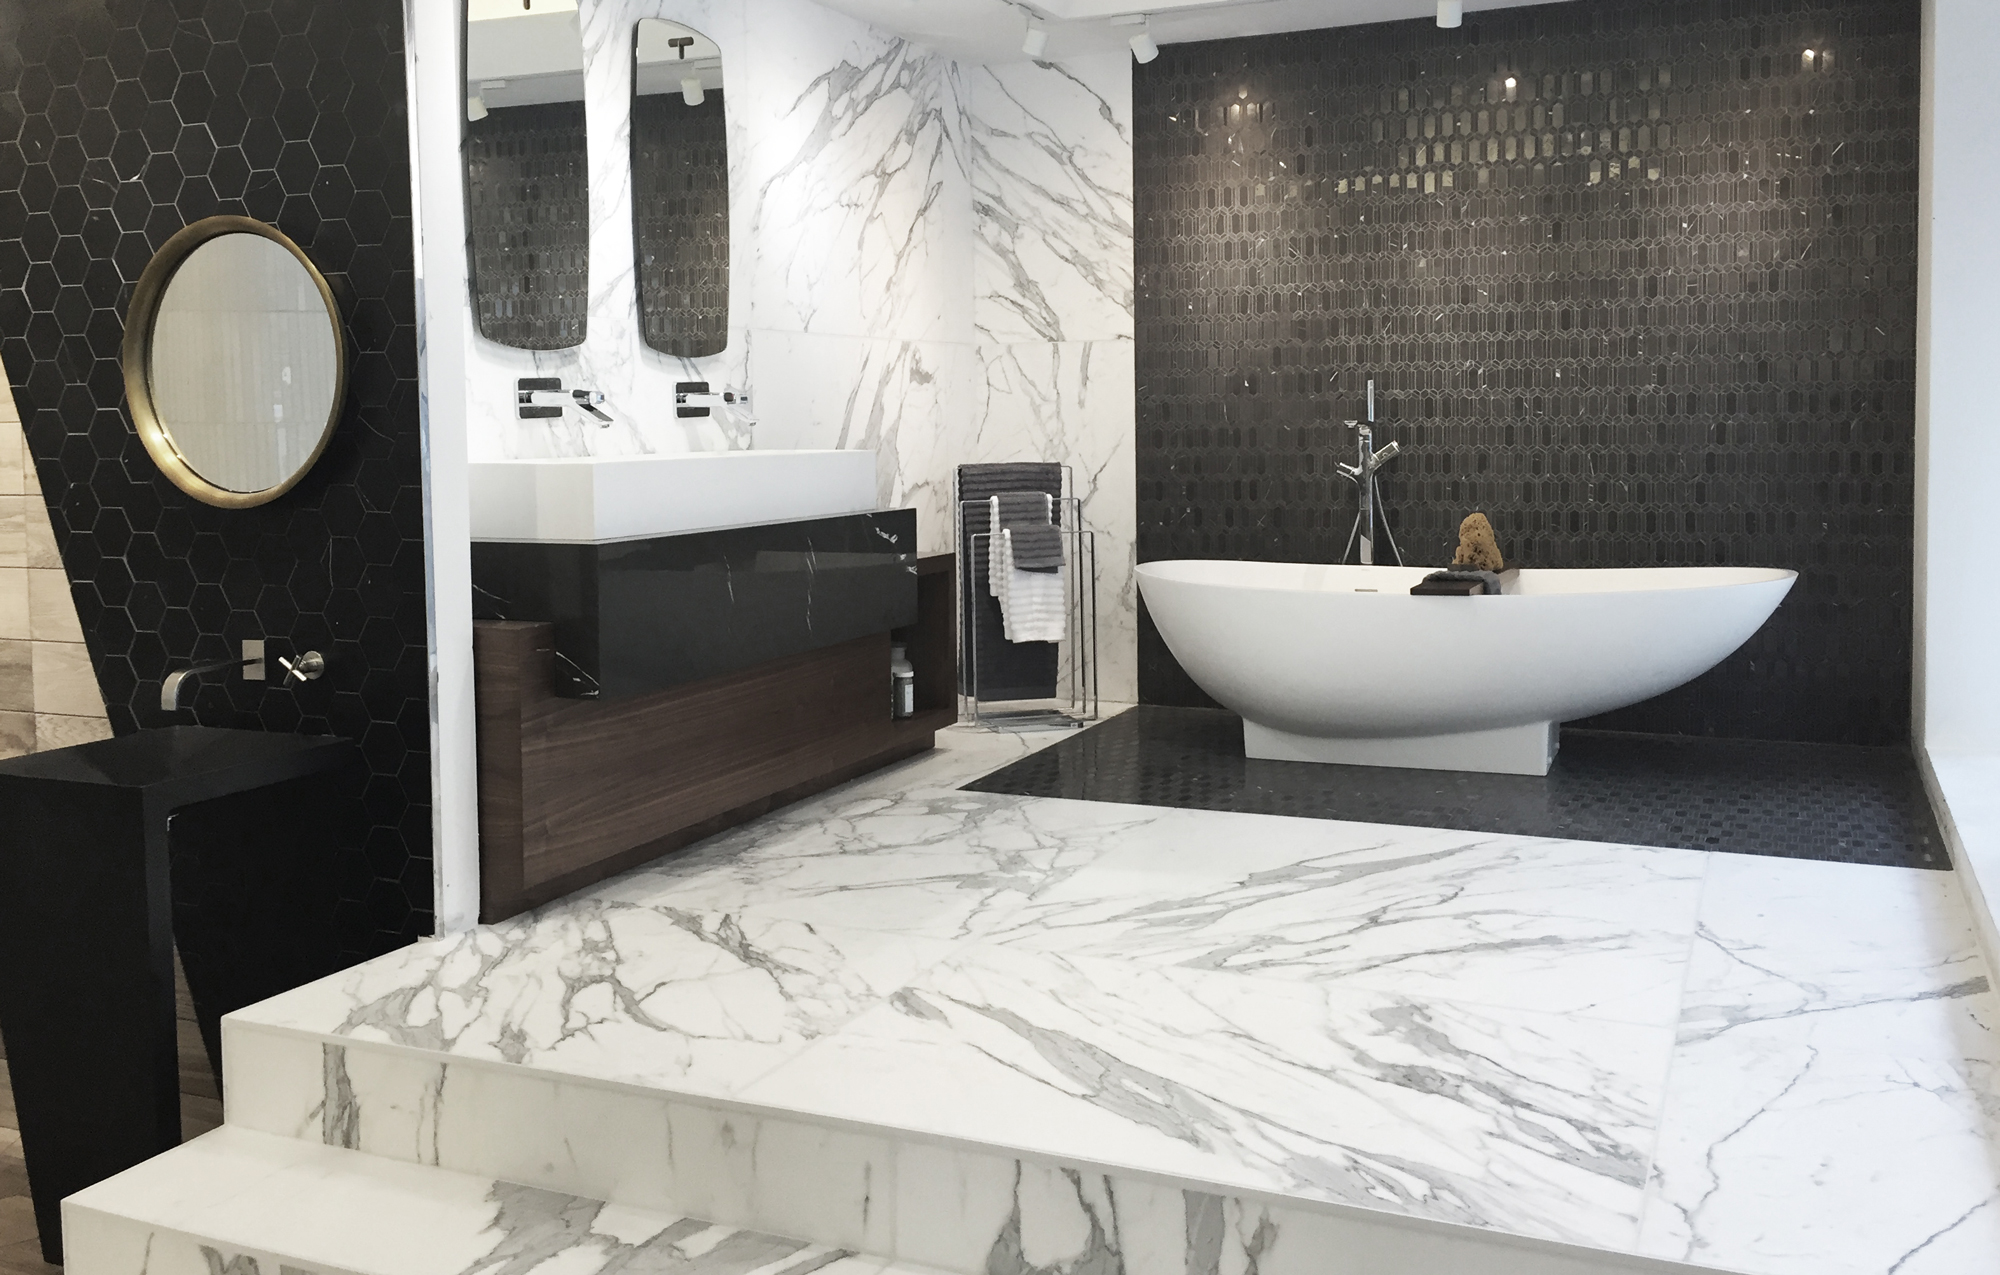 Nemo Tileu0027s Showroom In The Flatiron District. Image Courtesy Of Nemo Tile.